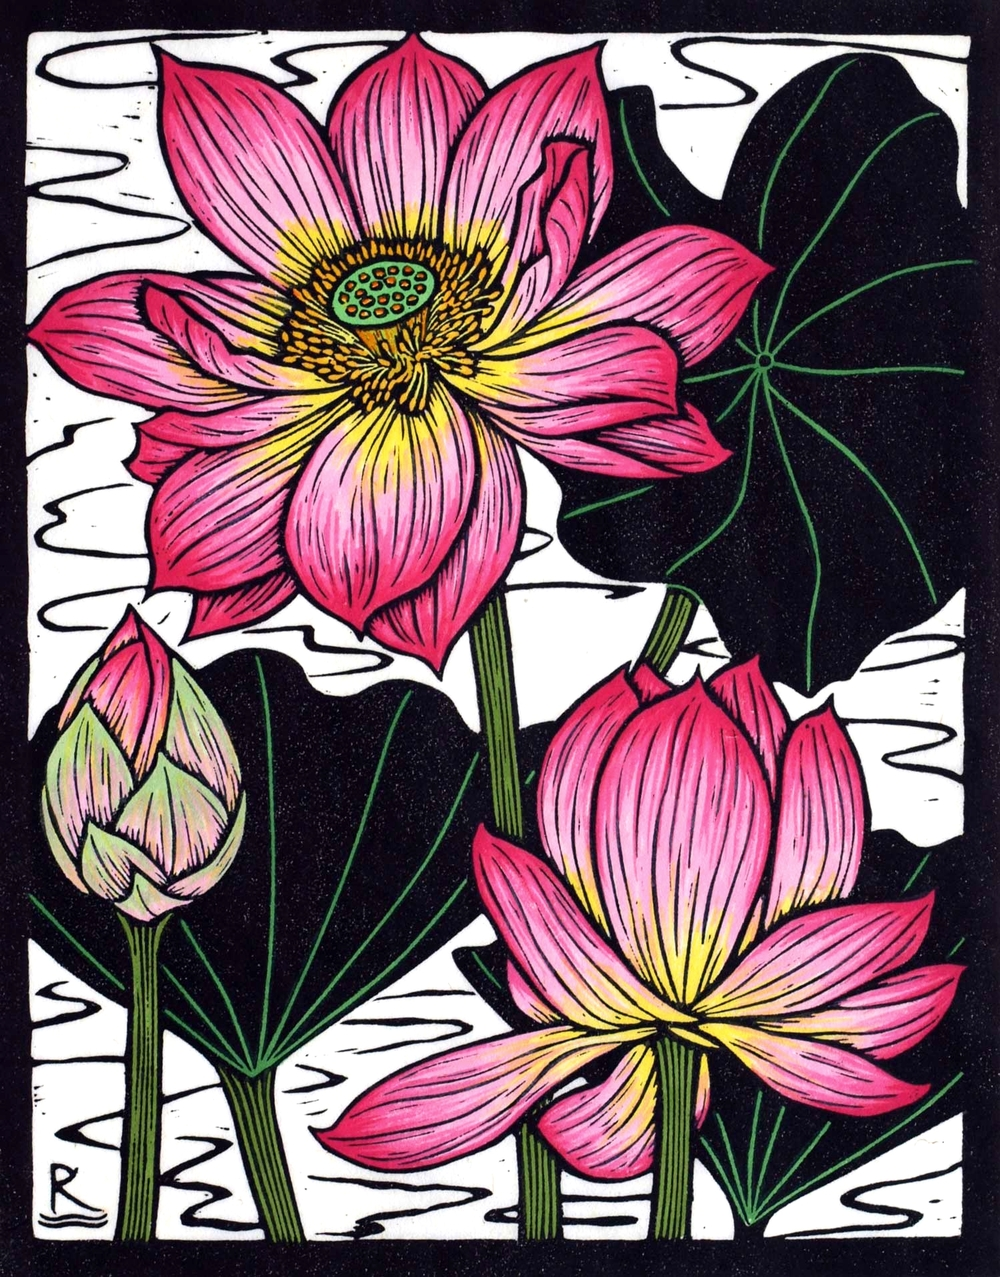 SACRED LOTUS I  28 X 22 CM    EDITION OF 50  HAND COLOURED LINOCUT ON HANDMADE JAPANESE PAPER  $600